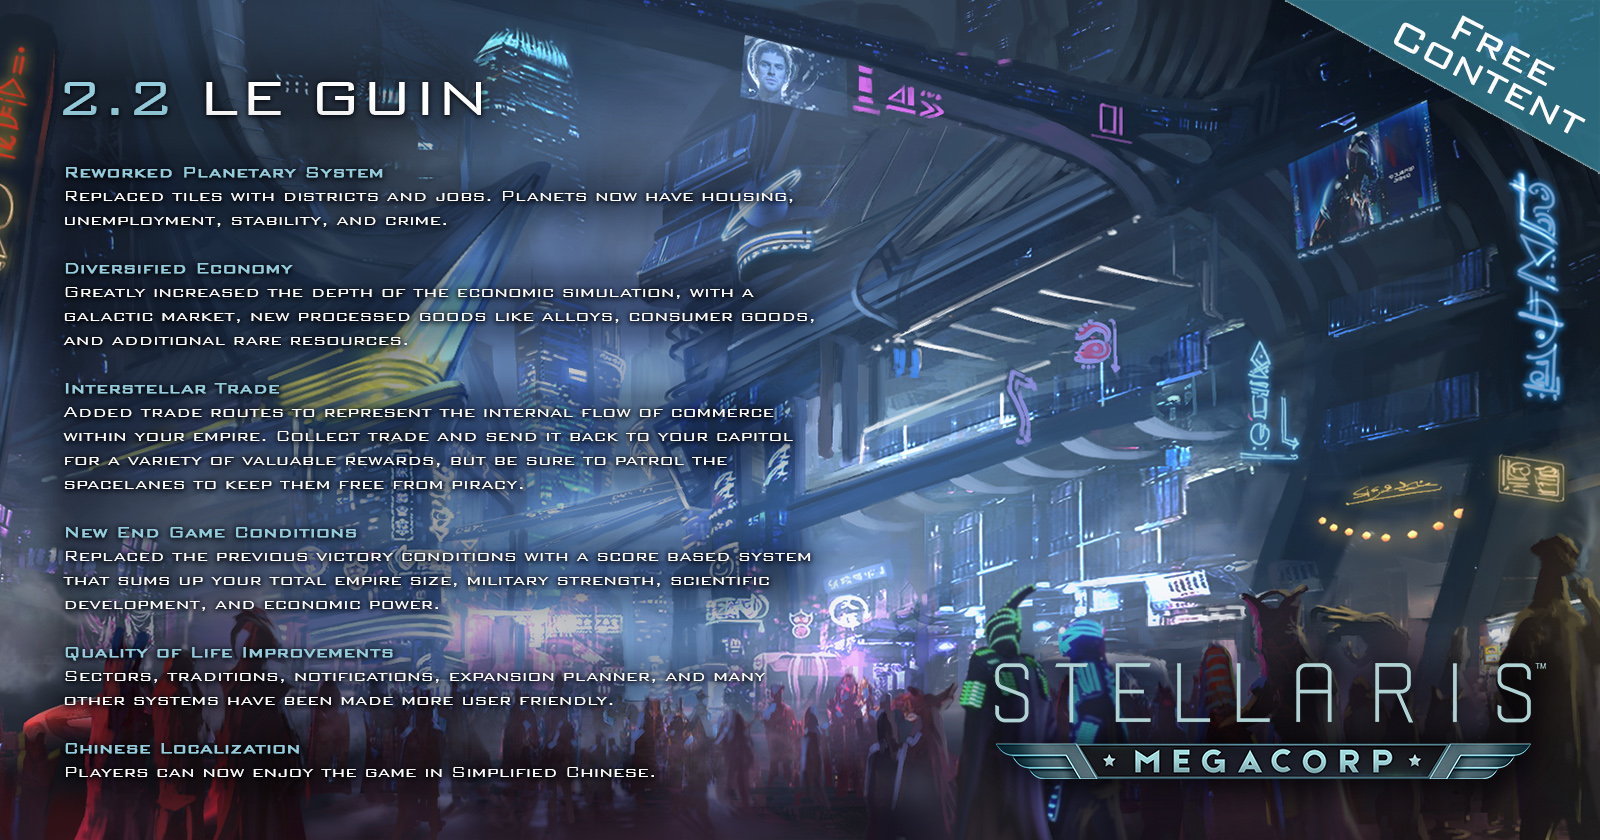 Dev Team] Le Guin update (2 2 0) Released [checksum 0d1c